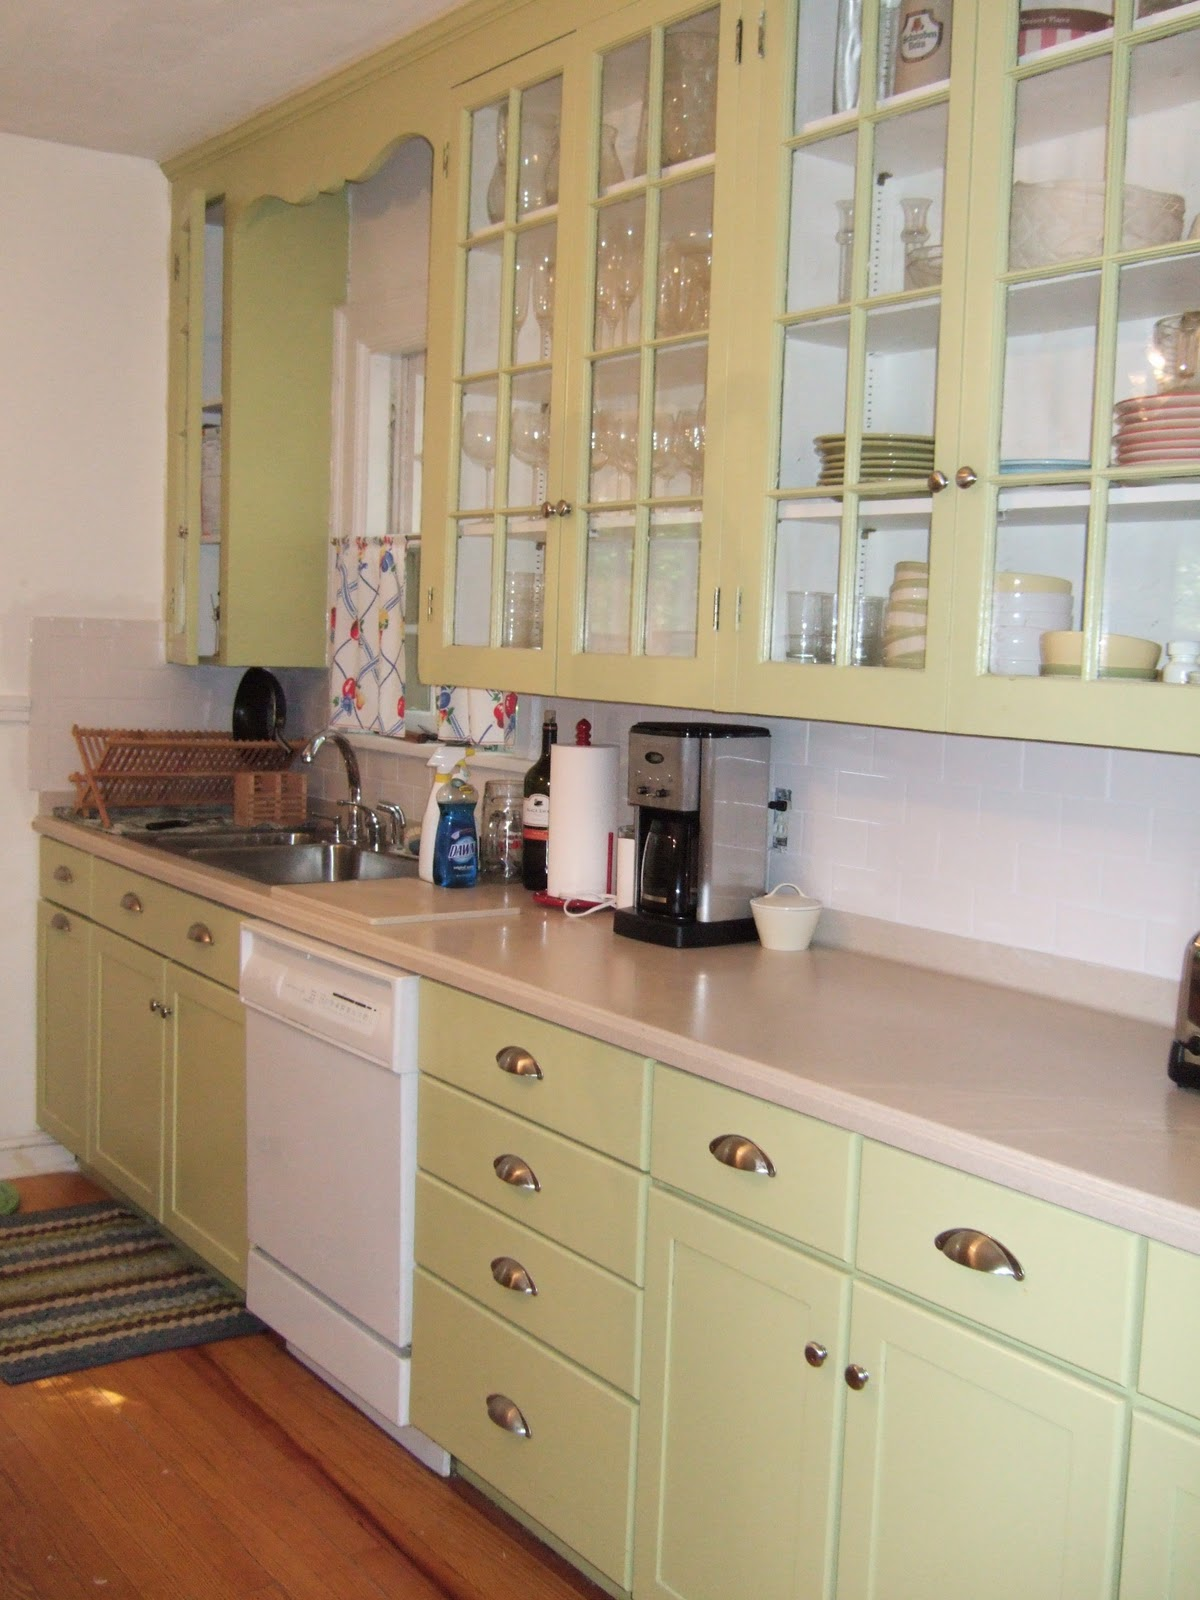 1940s Kitchen Cabinet - Rooms